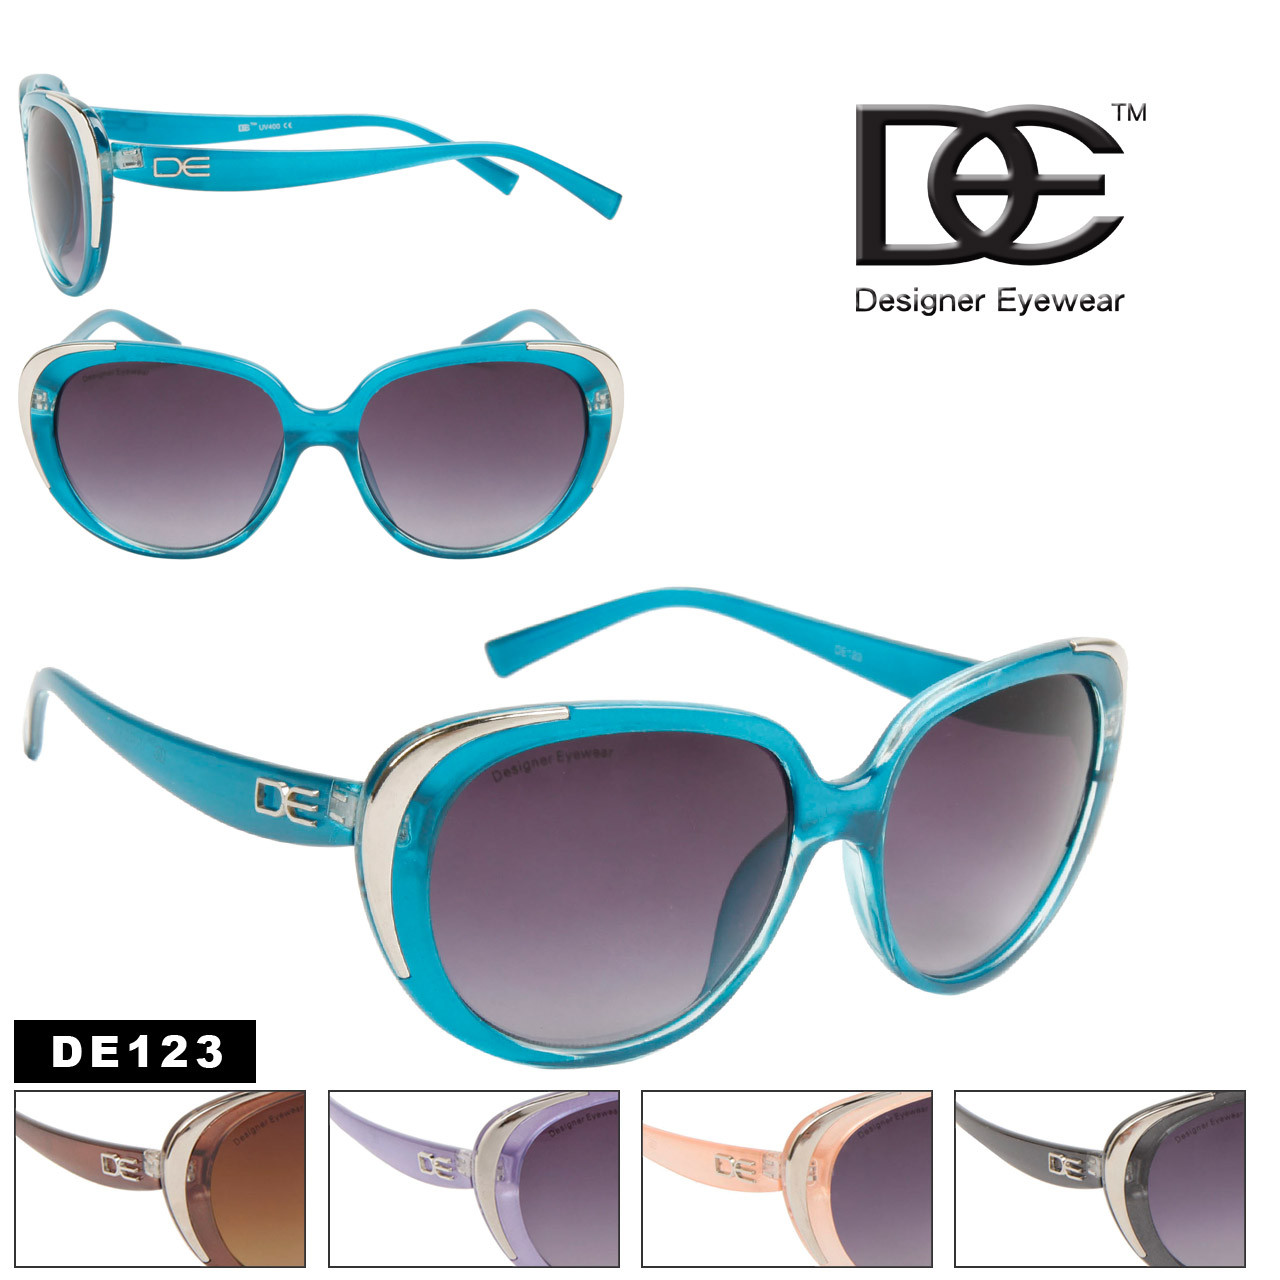 Designer Sunglasses Wholesale DE123